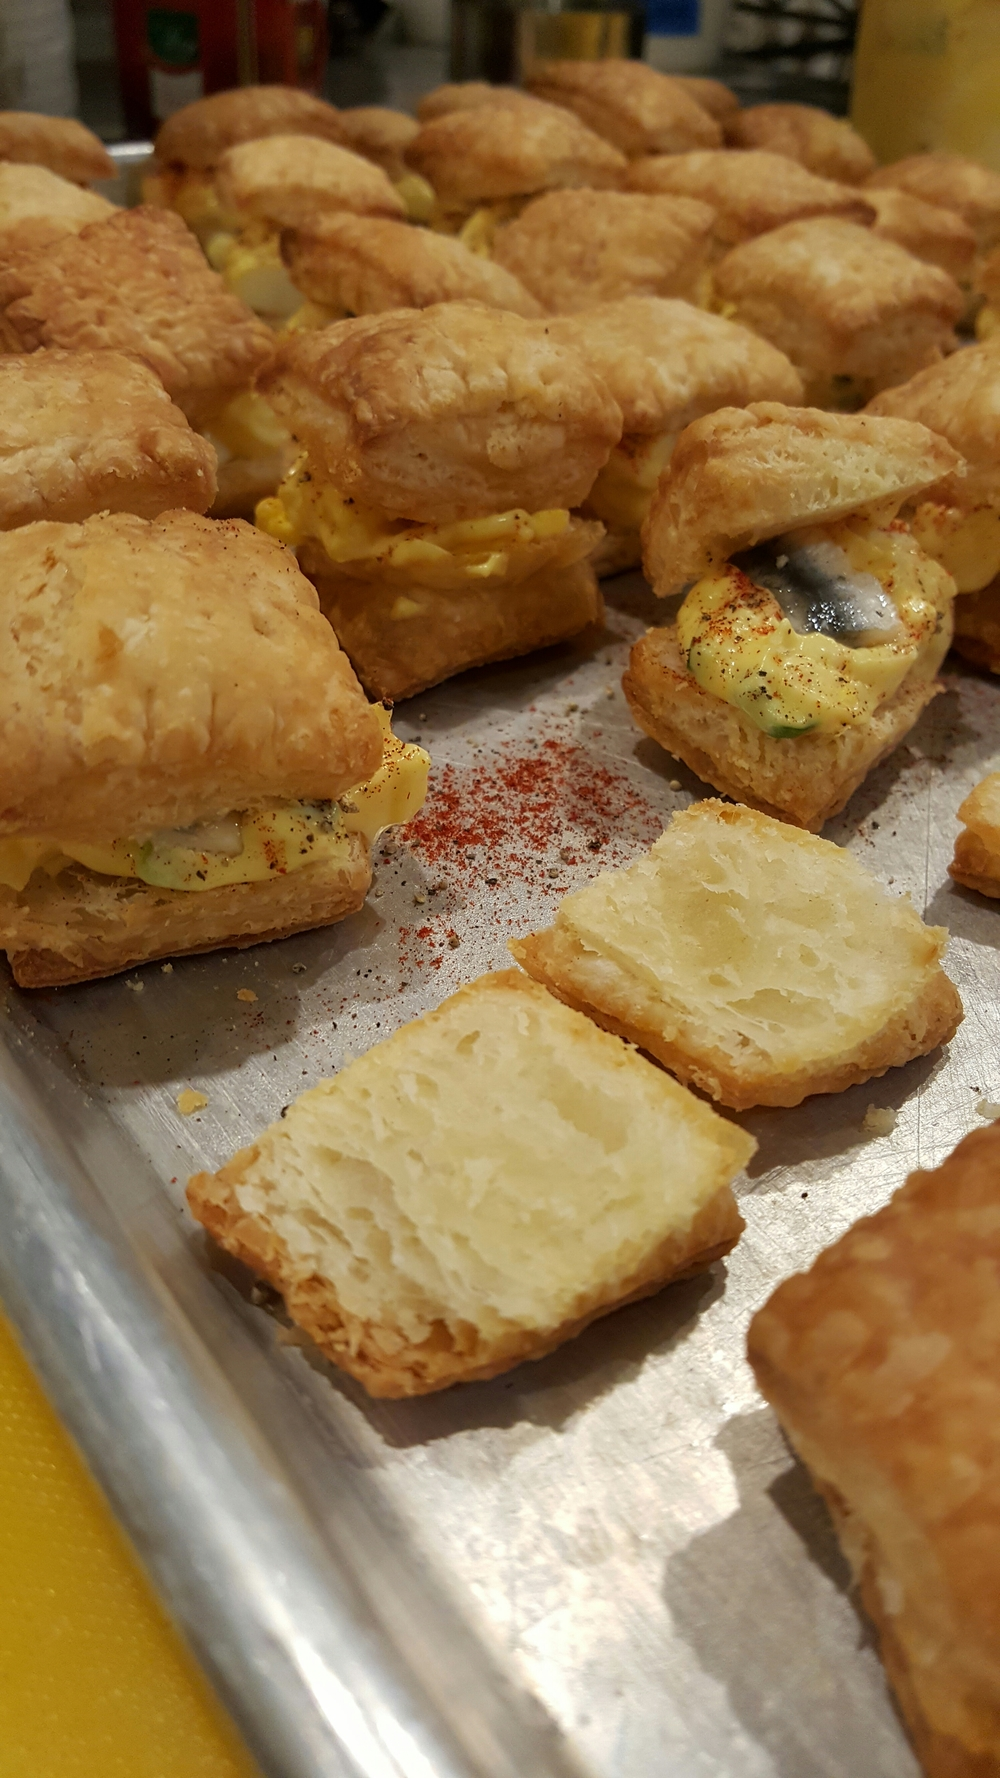 Egg salad on Puff pastry with white anchovies.